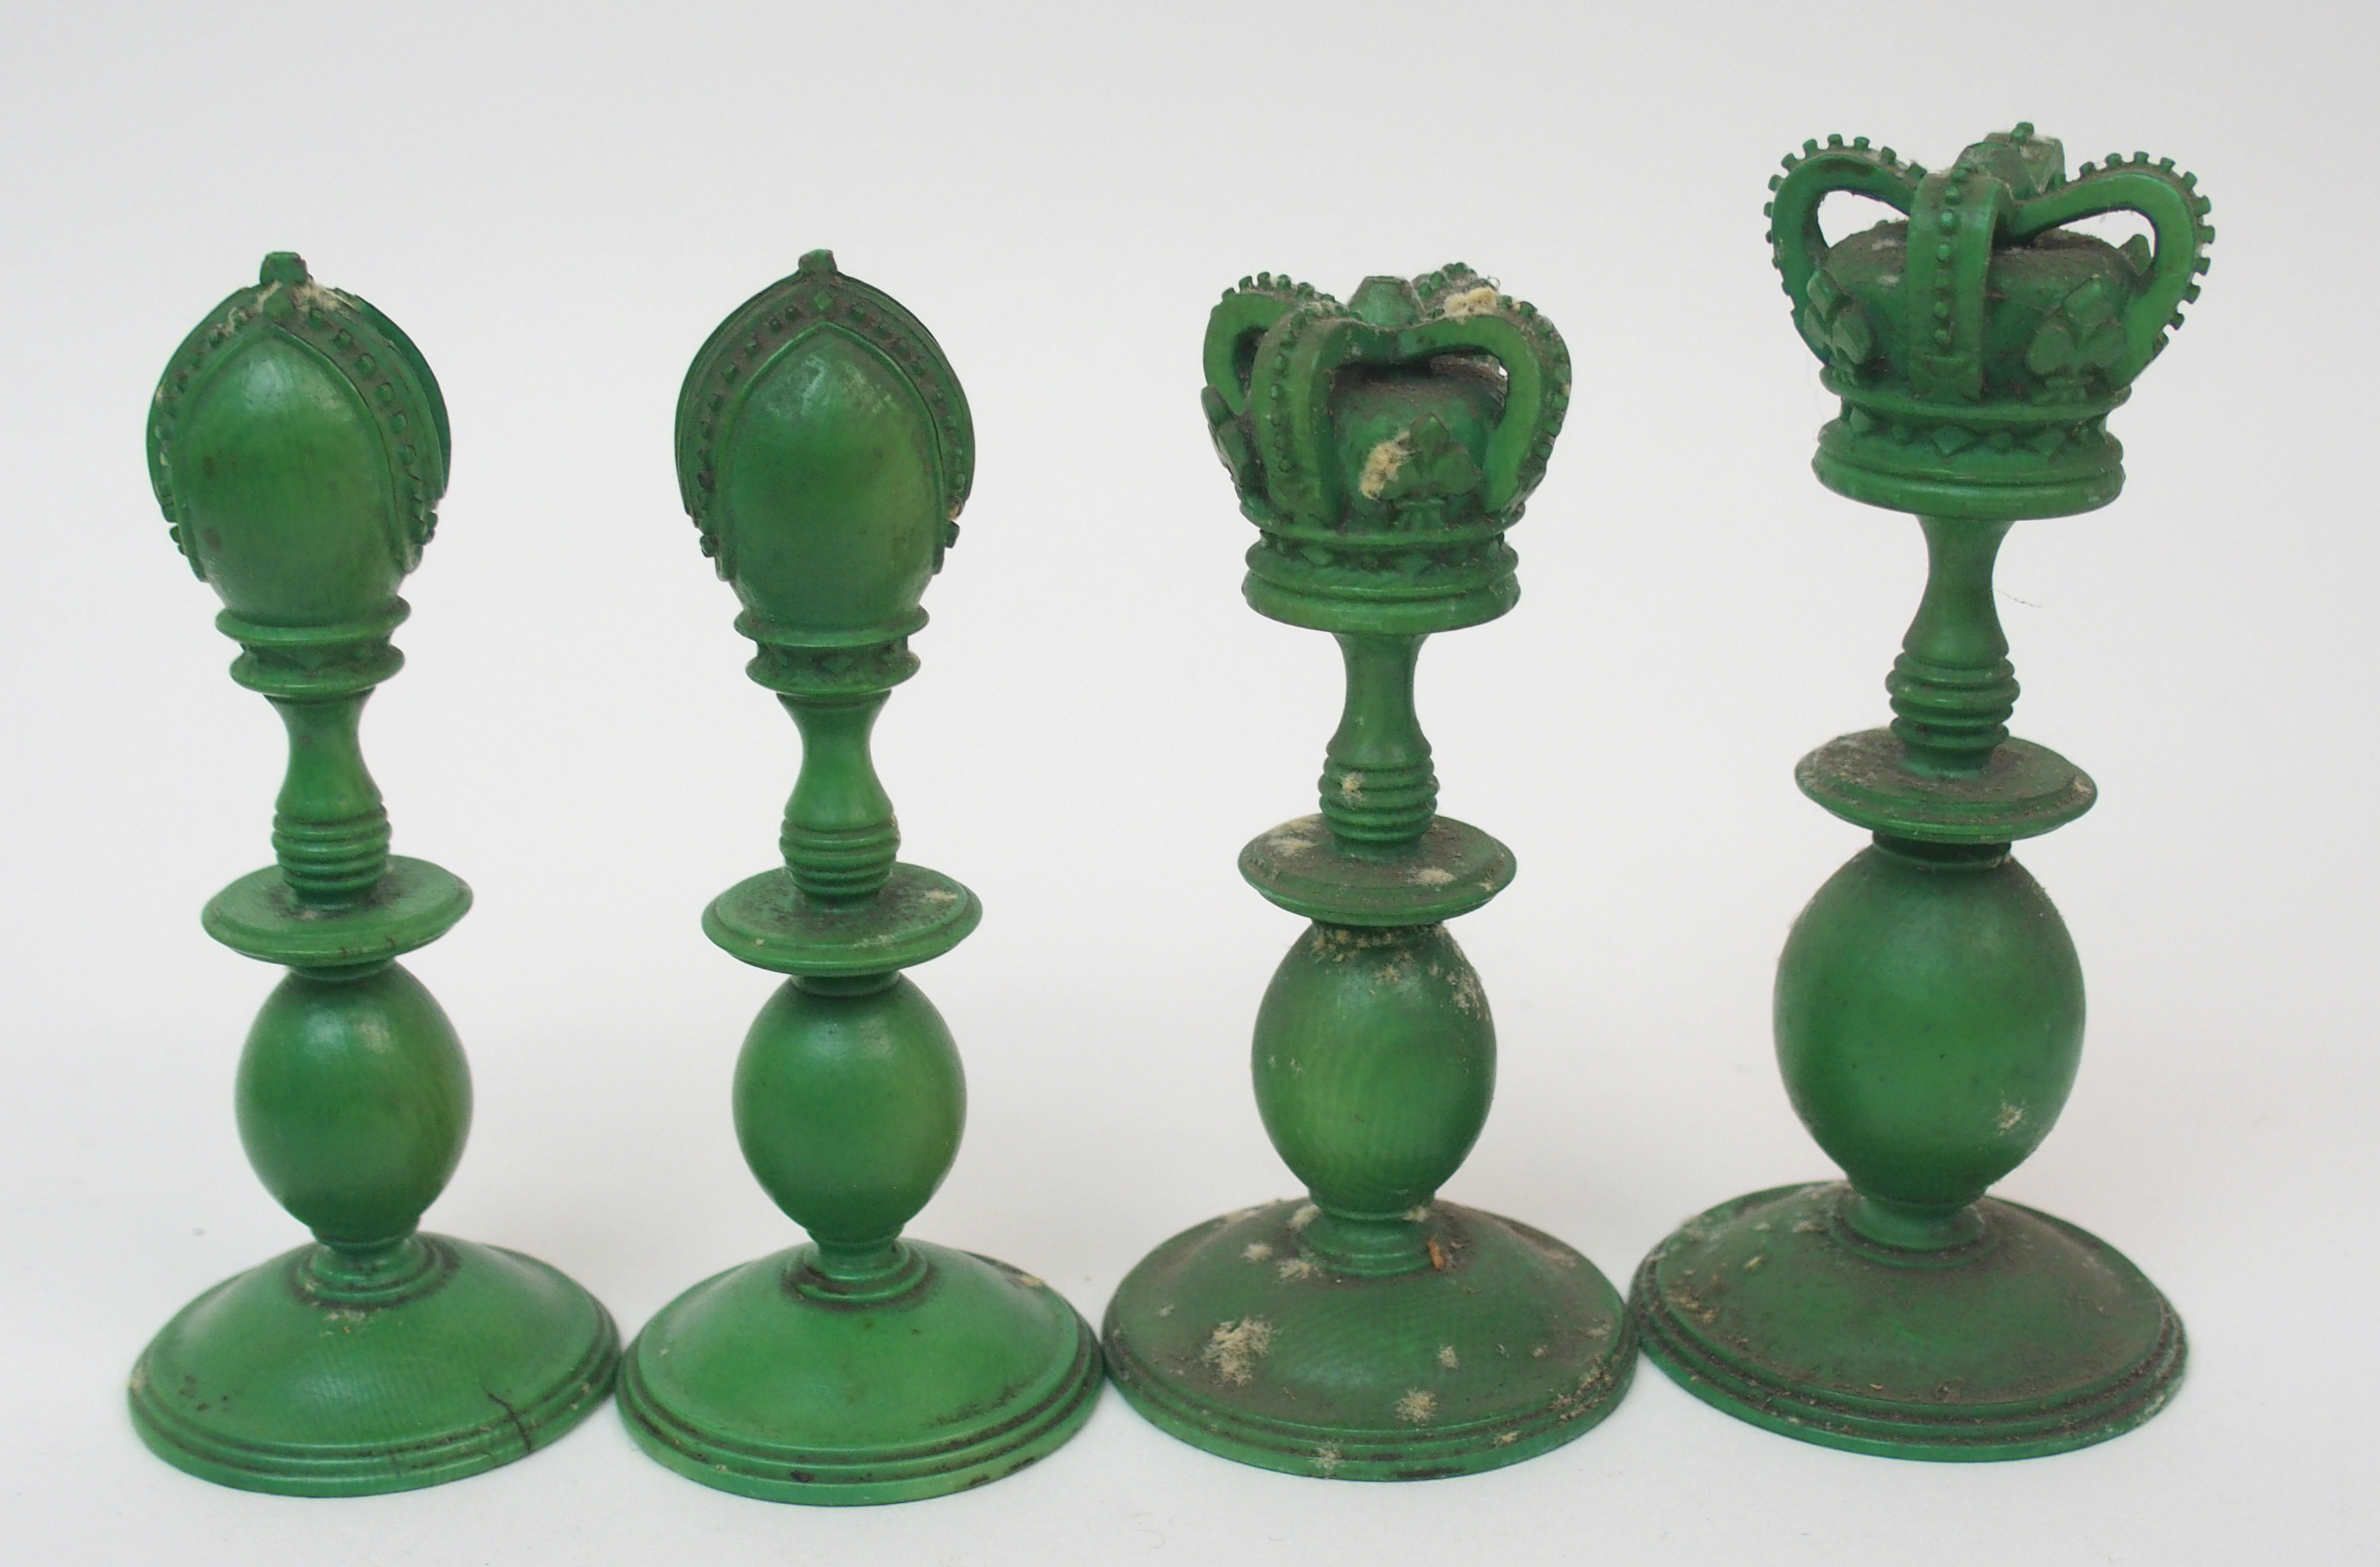 Lot 41 - AN EAST INDIAN IVORY CHEST SET probably Berhampore, one set stained green, lacking one pawn, (with